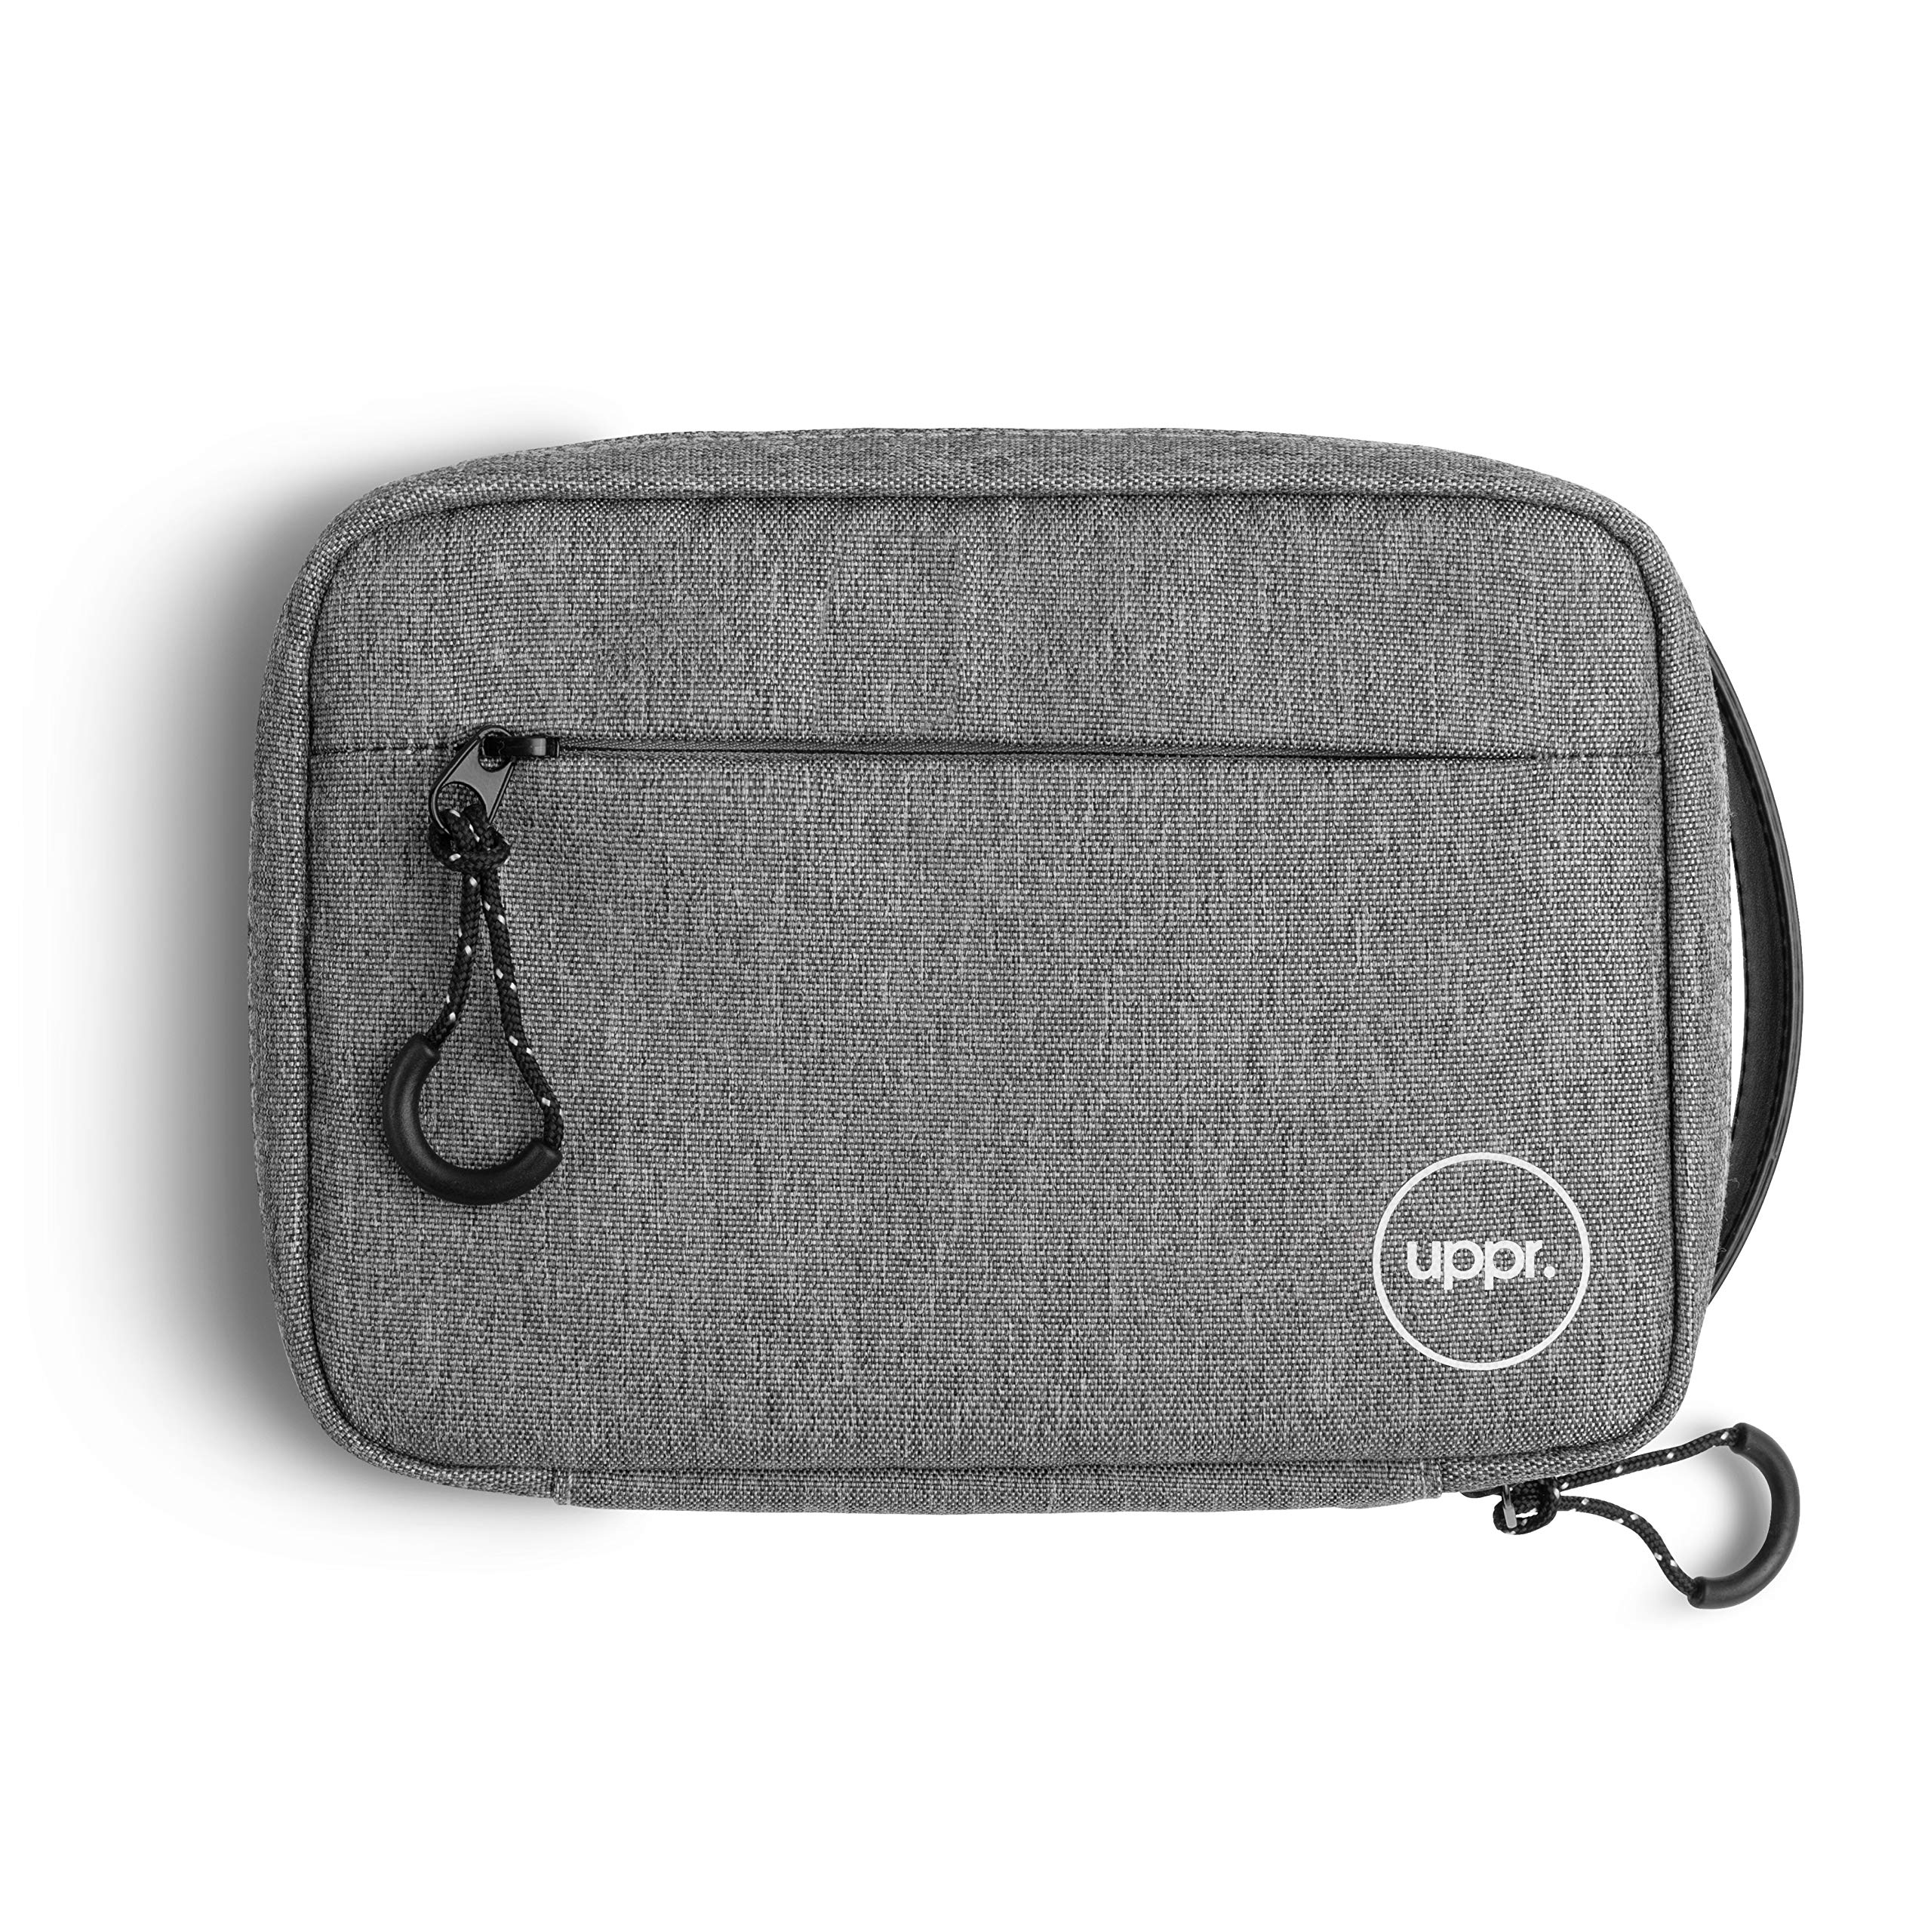 UPPERCASE Designs Organizer 9.0 Portable Electronic Accessories Travel Pouch with Leather Handle for Laptop MacBook Accessories, Chargers, Tech Gears, Gadgets, Cables, Cords, GoPro, Power Bank (9.0)... by UPPERCASE